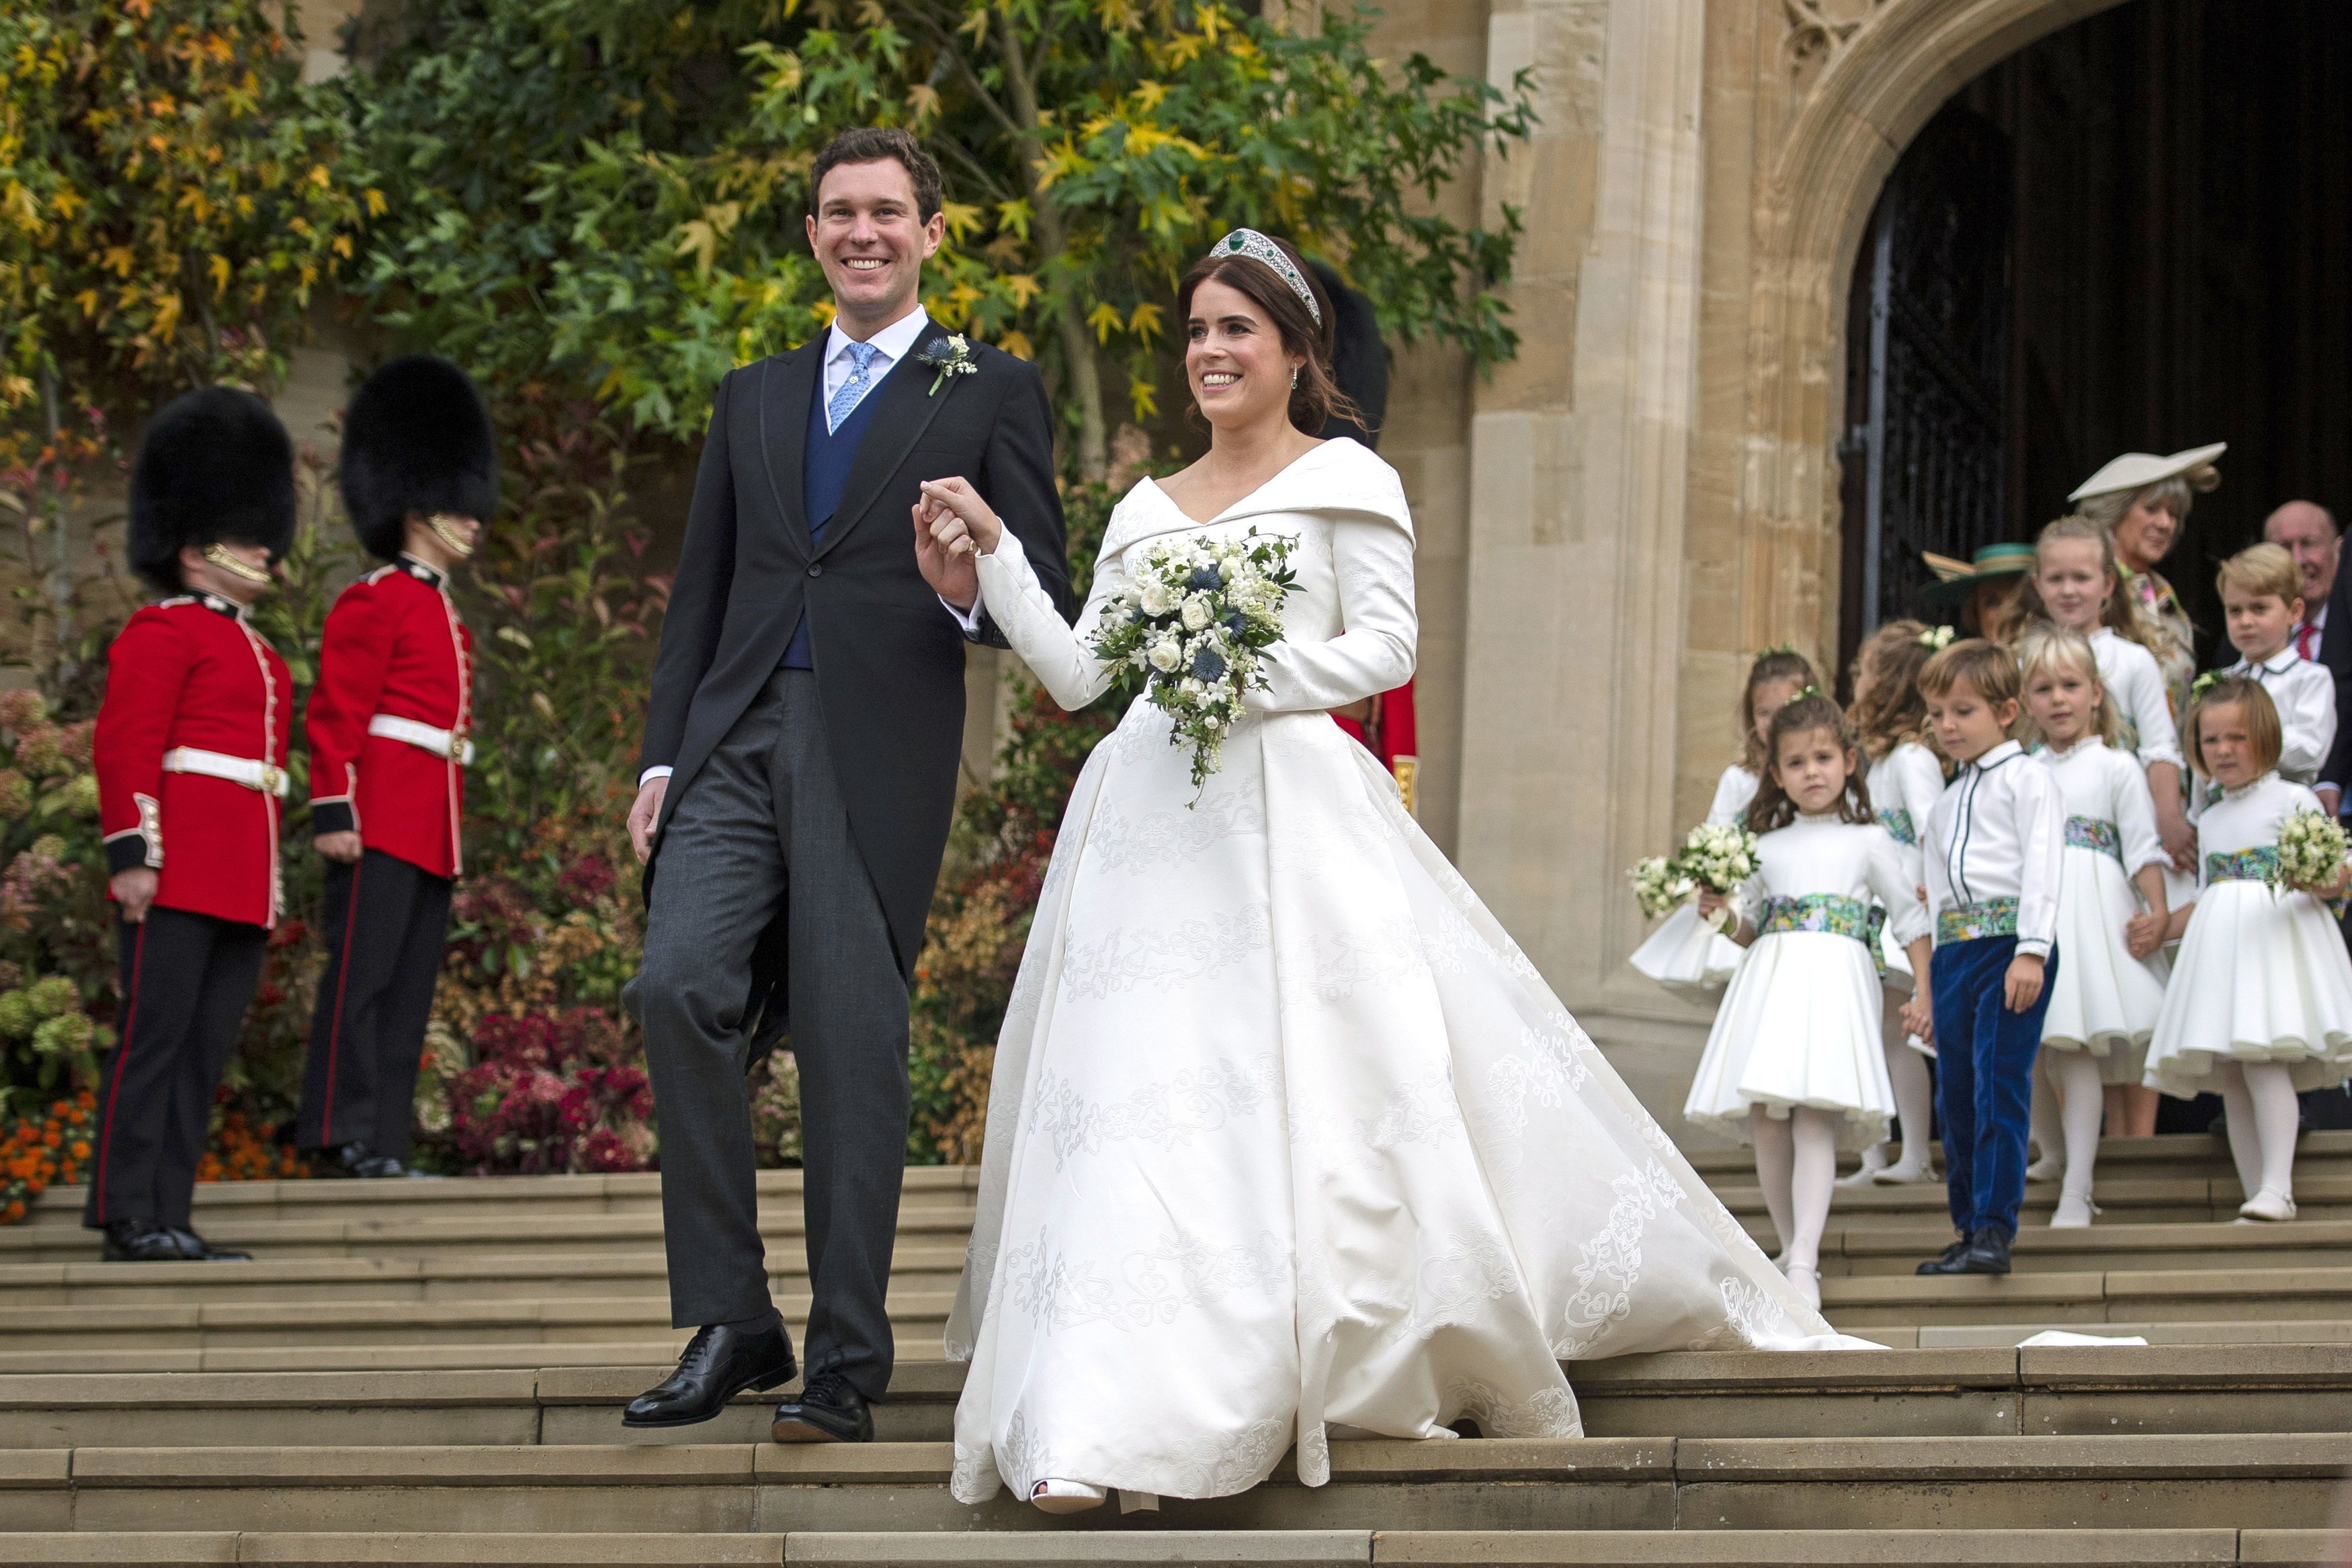 Forum on this topic: Princess Eugenie shares adorable never-before-seen family photo, princess-eugenie-shares-adorable-never-before-seen-family-photo/